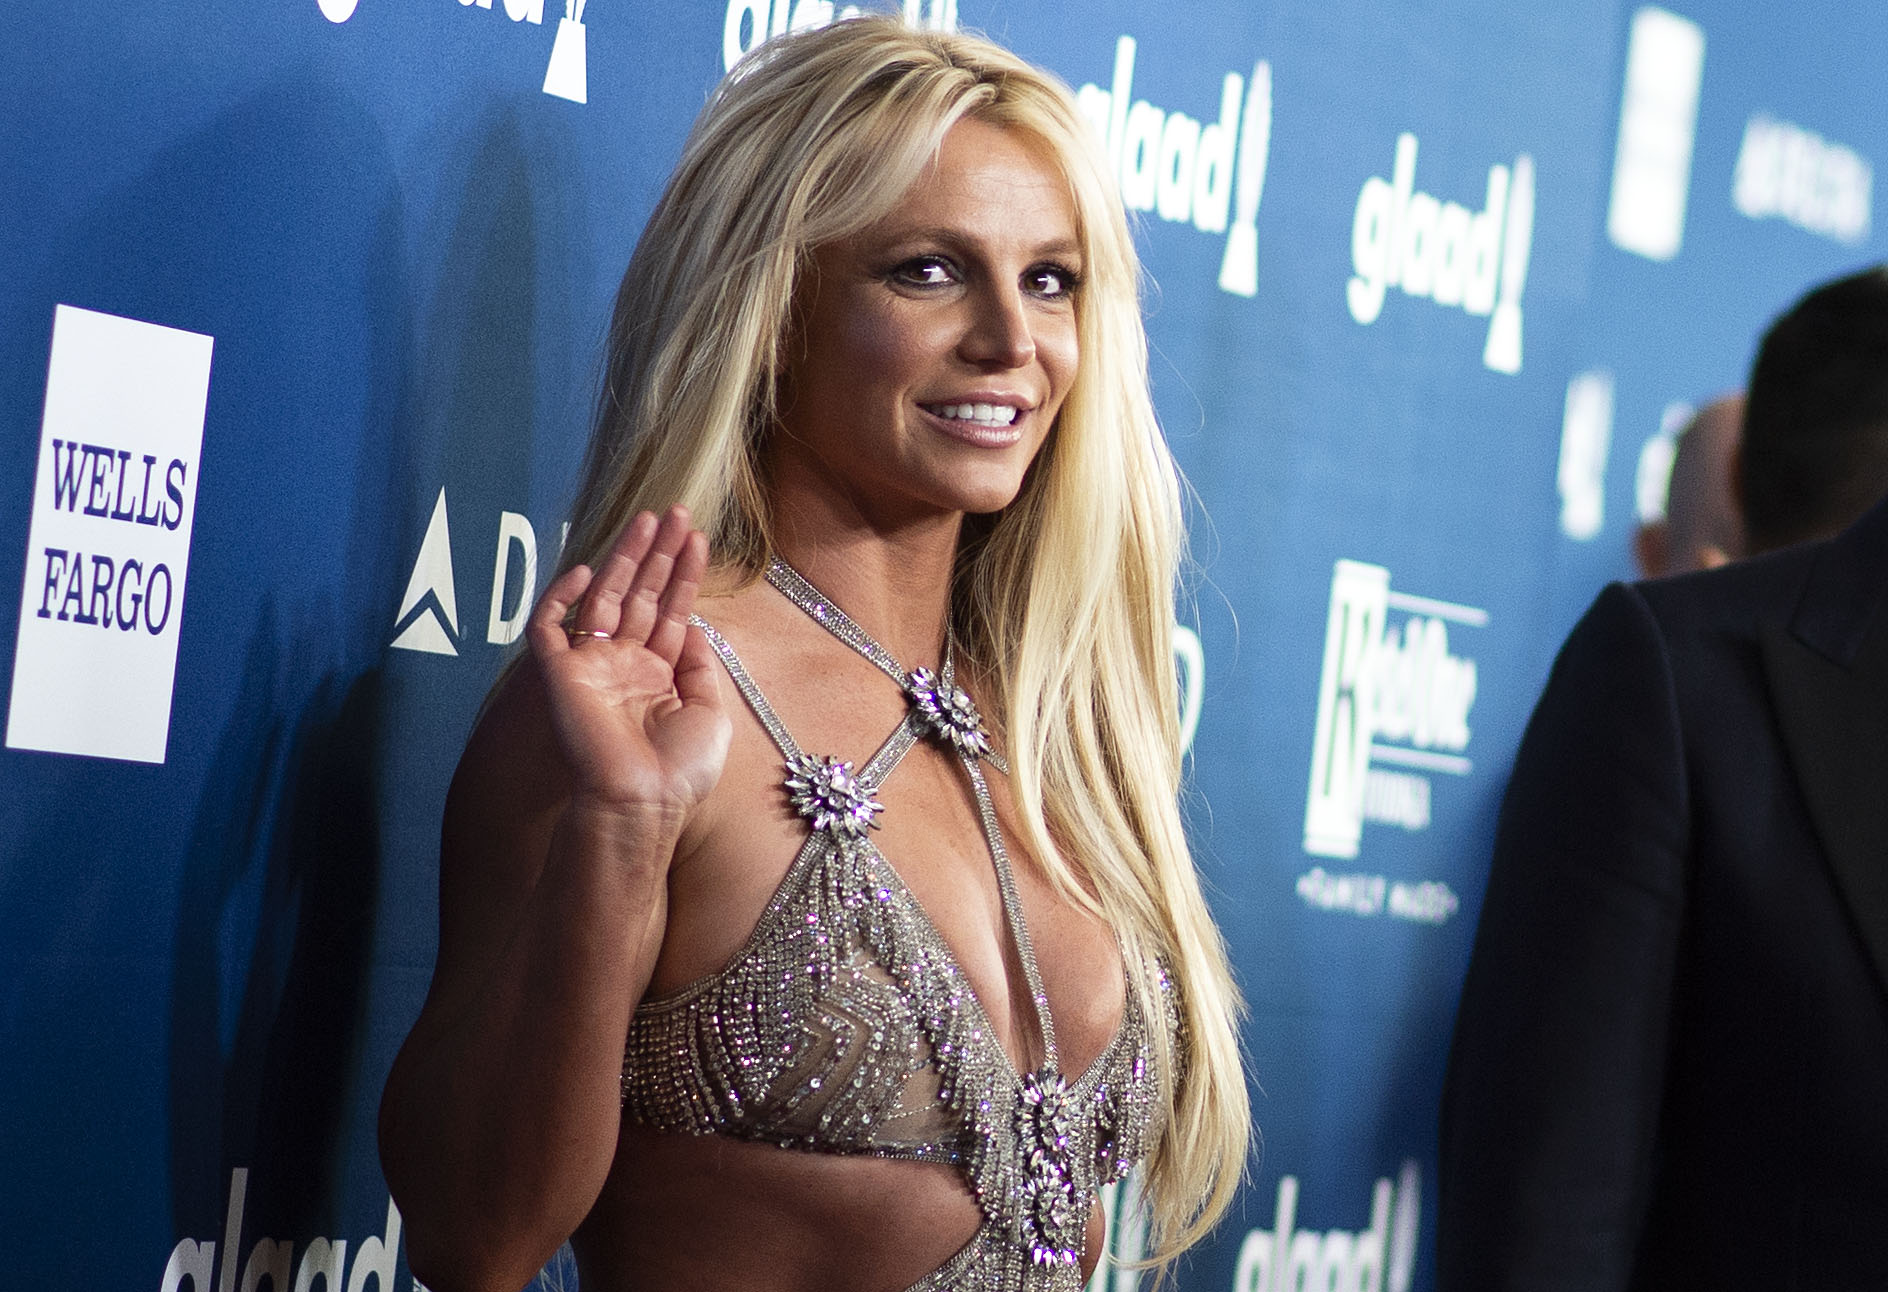 Britney Spears has been pushing her attorney to petition to end her conservatorship in days since hearing